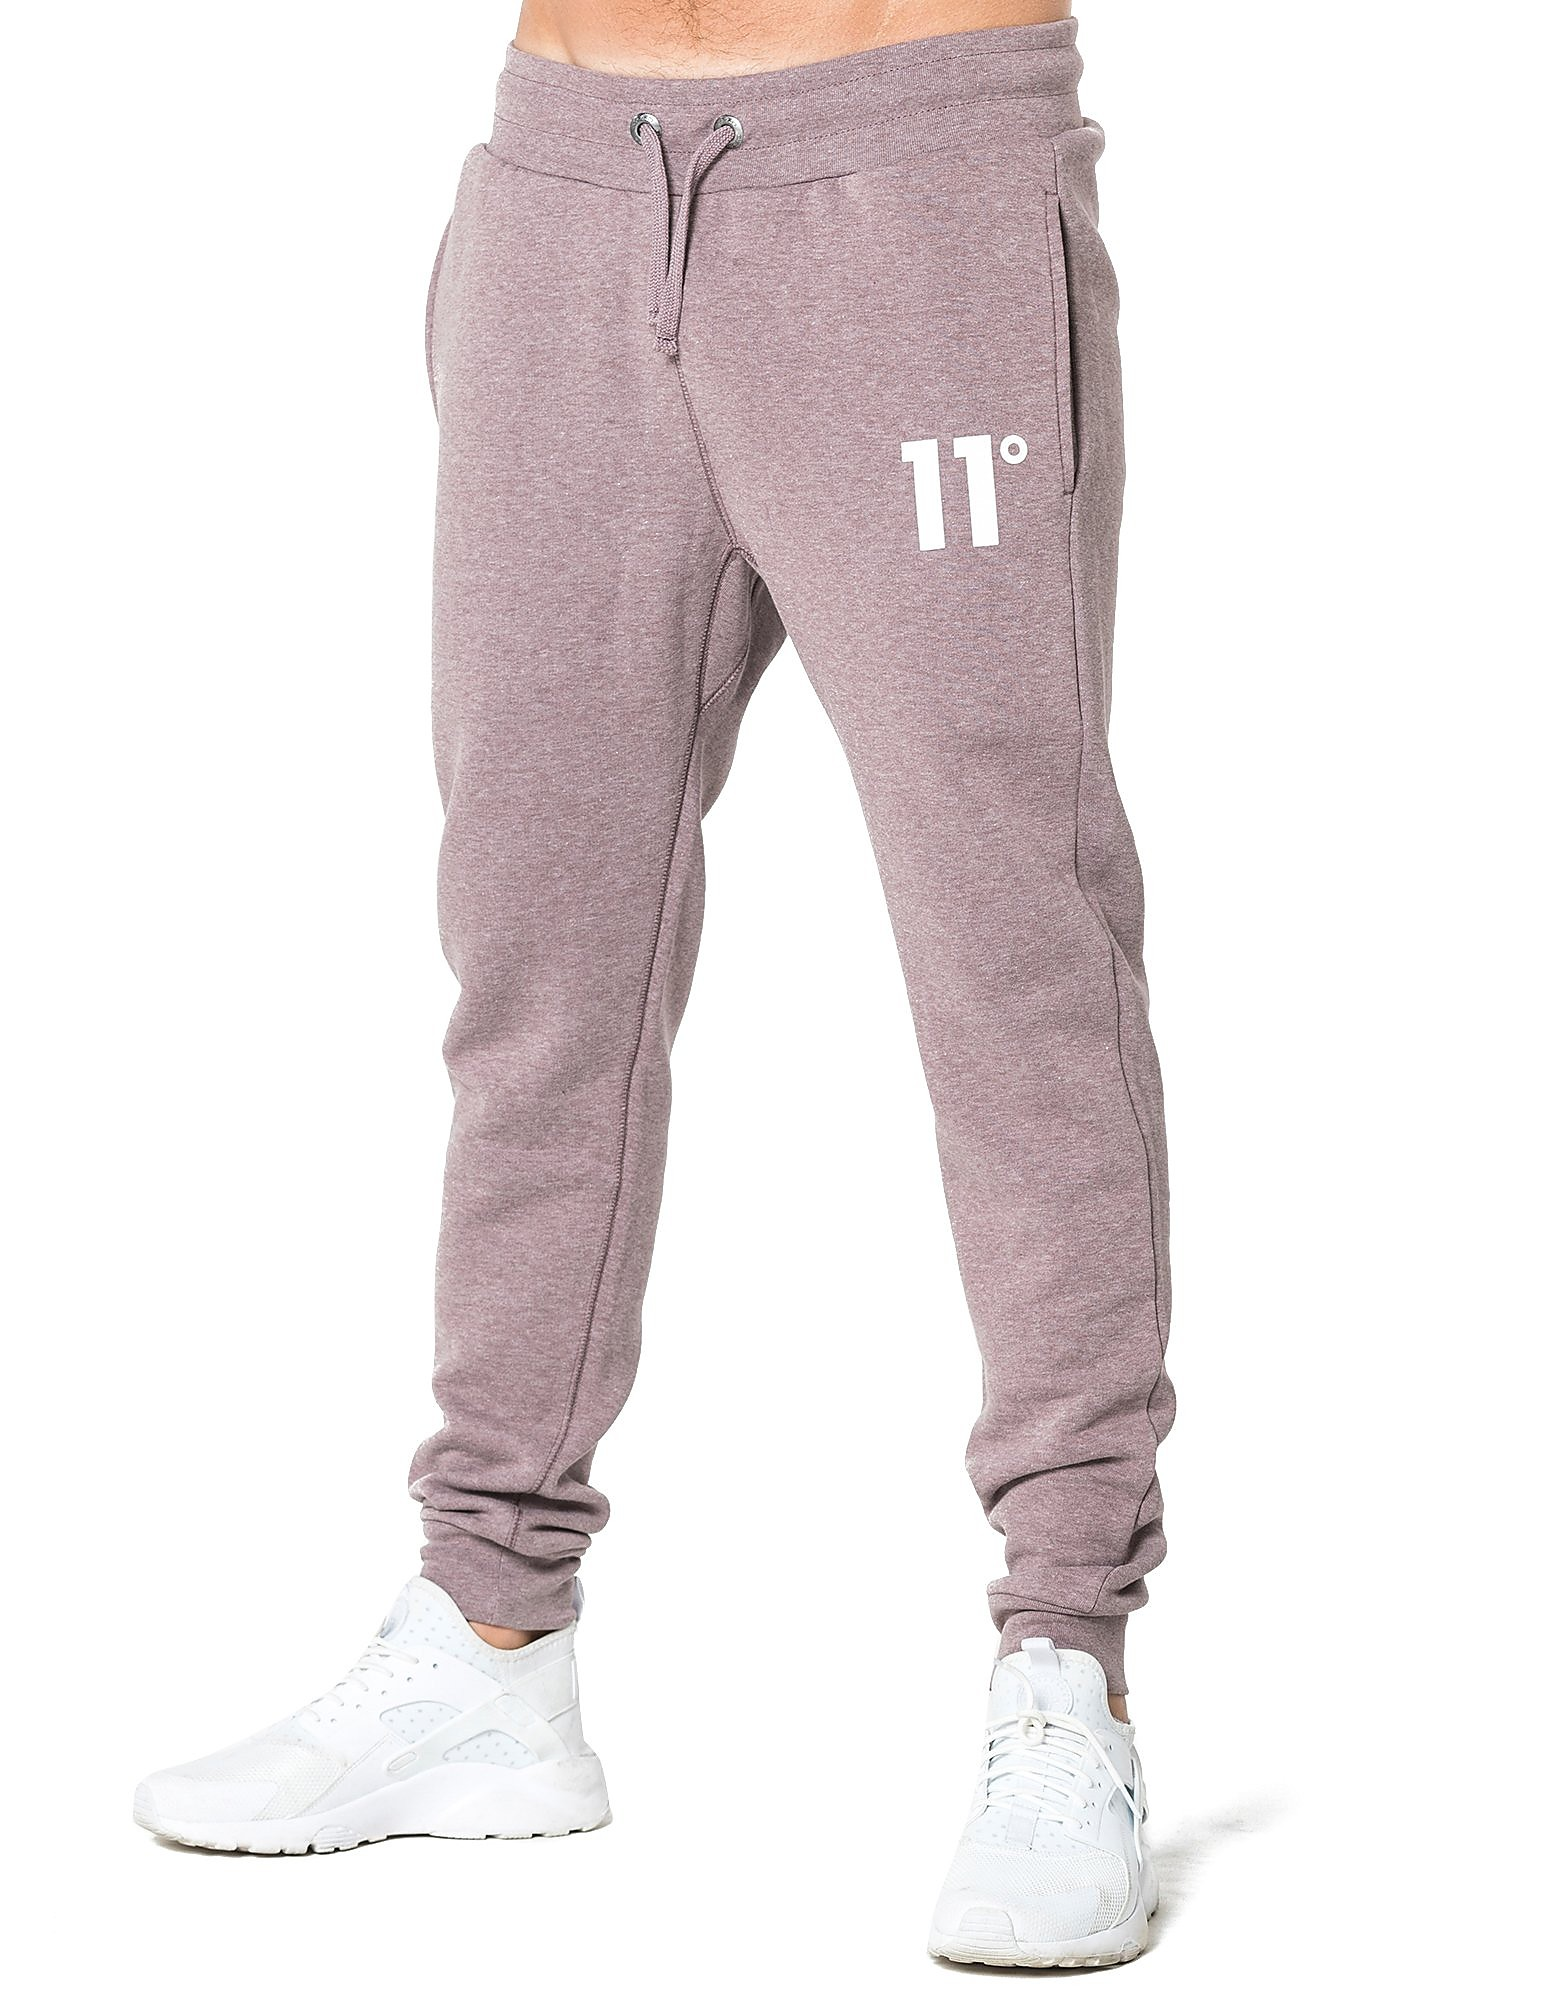 11 Degrees Core Flausch Joggers